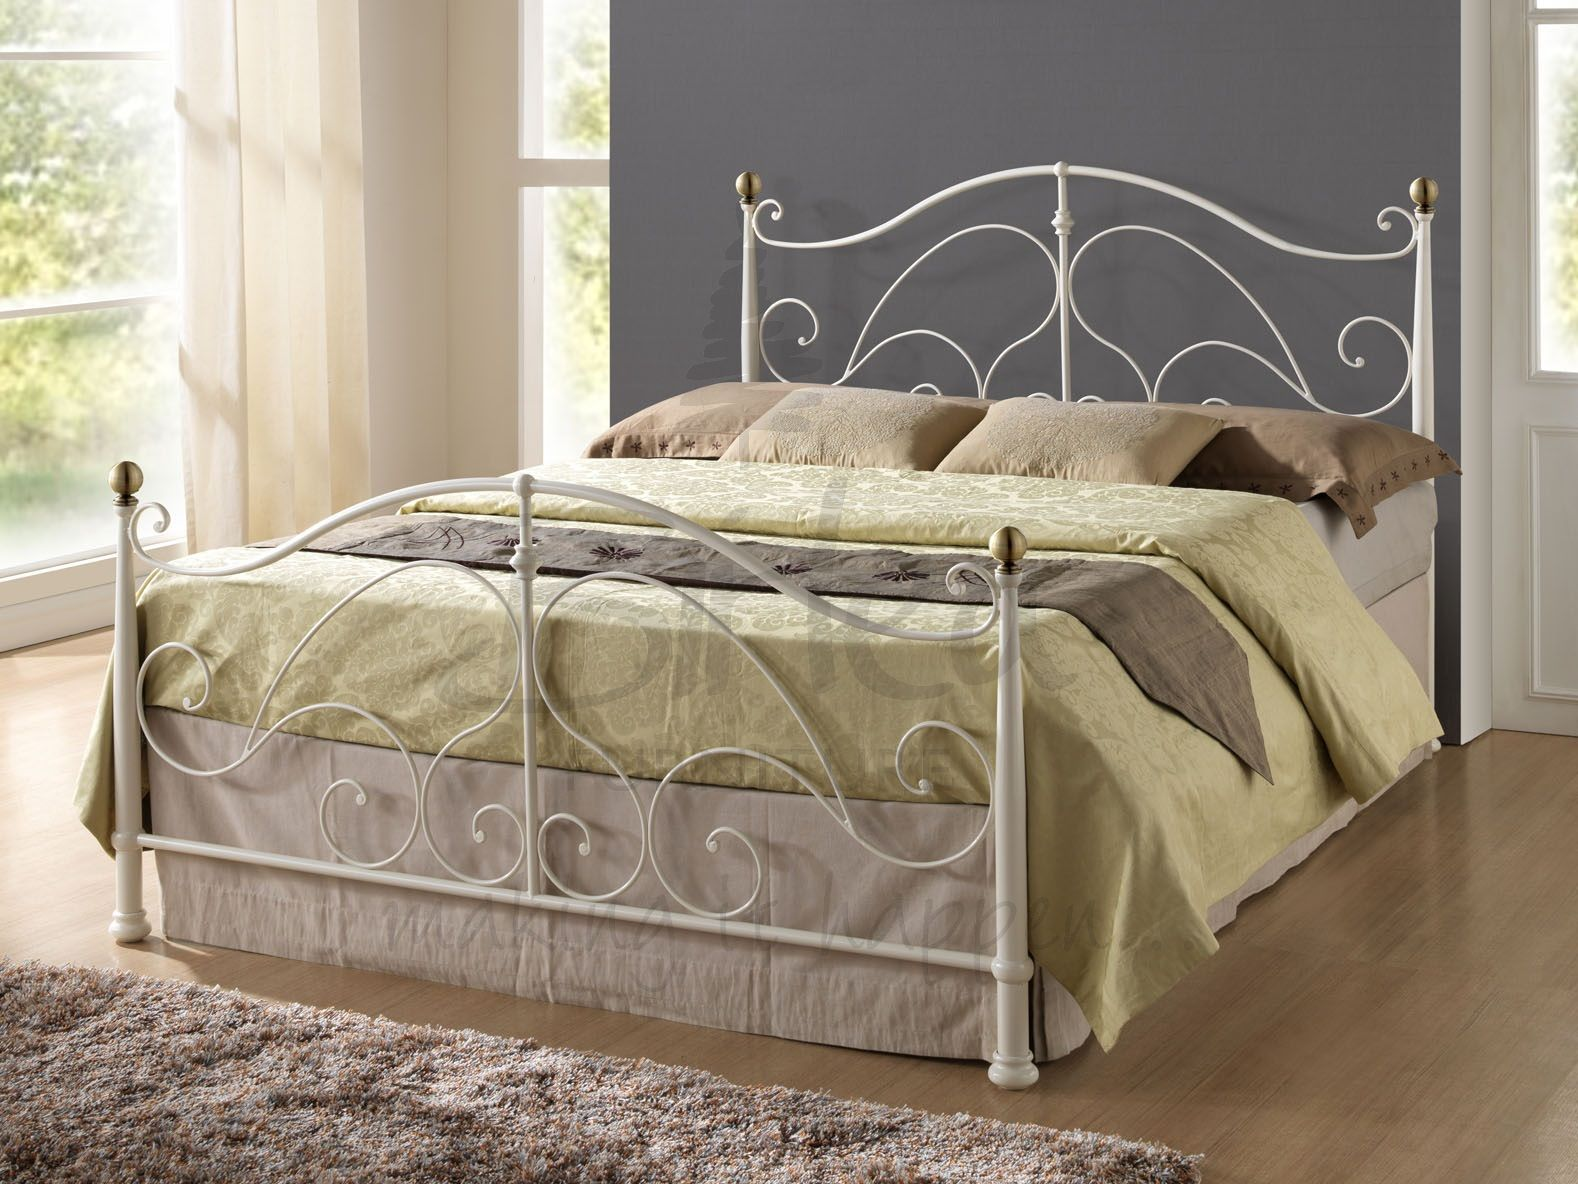 4ft bed frame - Beds with Mattresses : Mince His Words